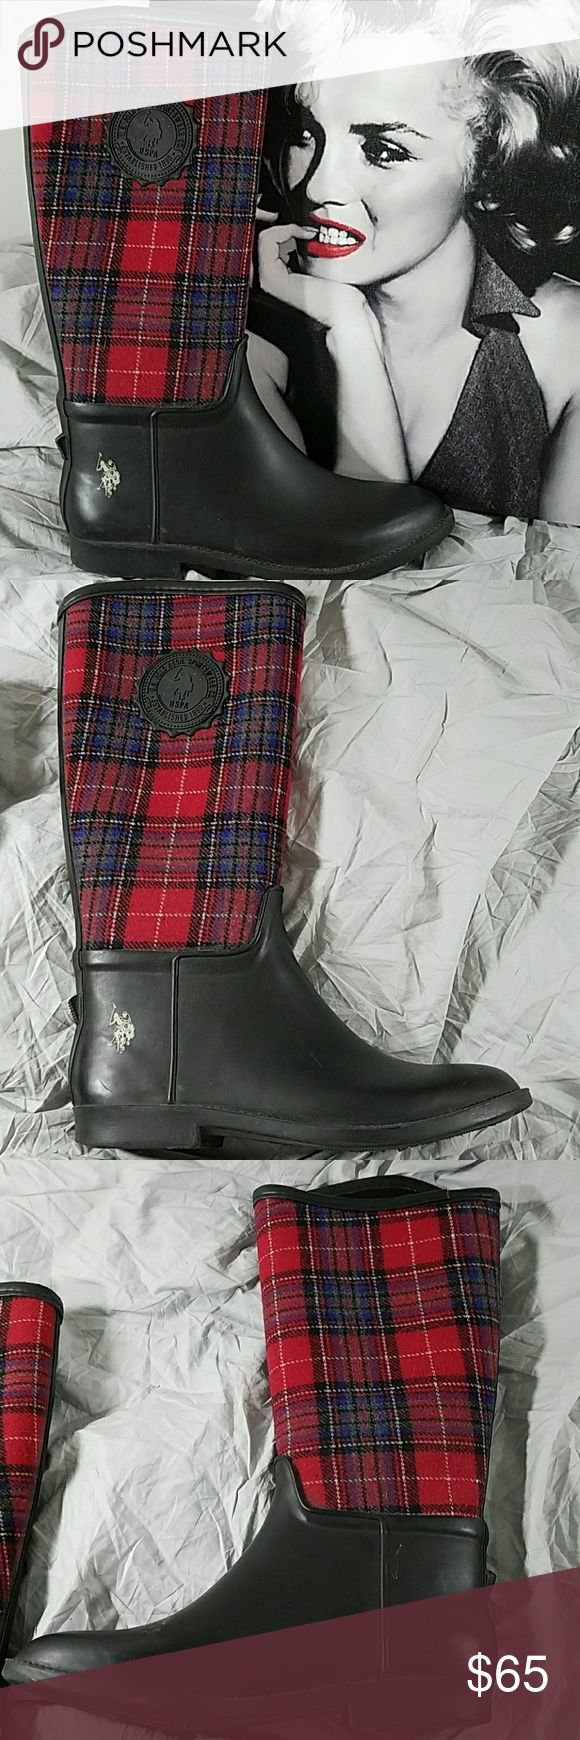 Ralph Lauren U.S. POLO ASSN. SPORTWEAR BOOTS Great condition  Height 14 inches Polo by Ralph Lauren Shoes Winter & Rain Boots